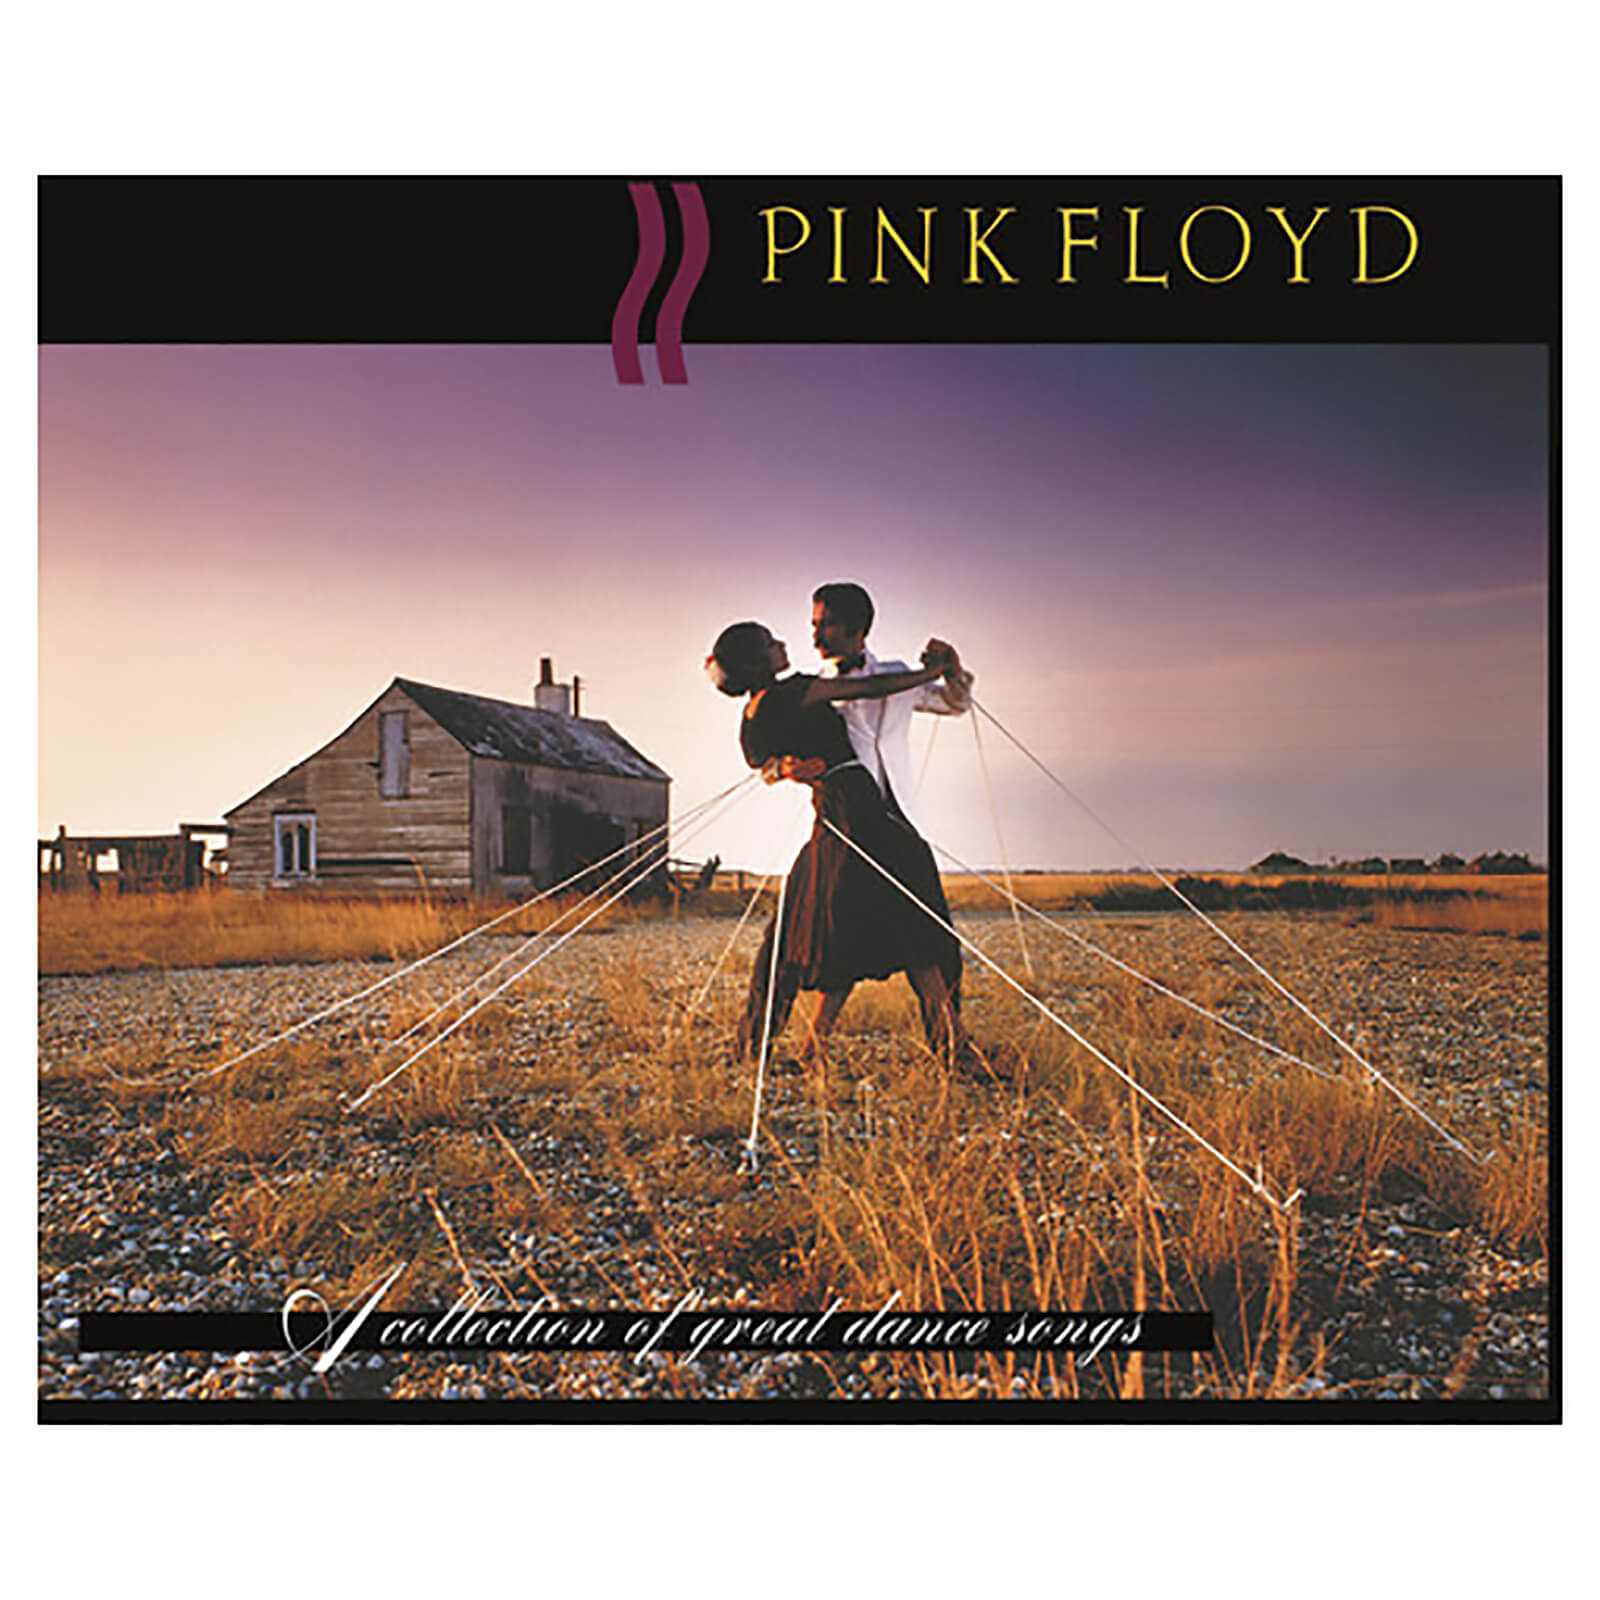 Pink Floyd - Collection Of Great Dance Songs - Vinyl